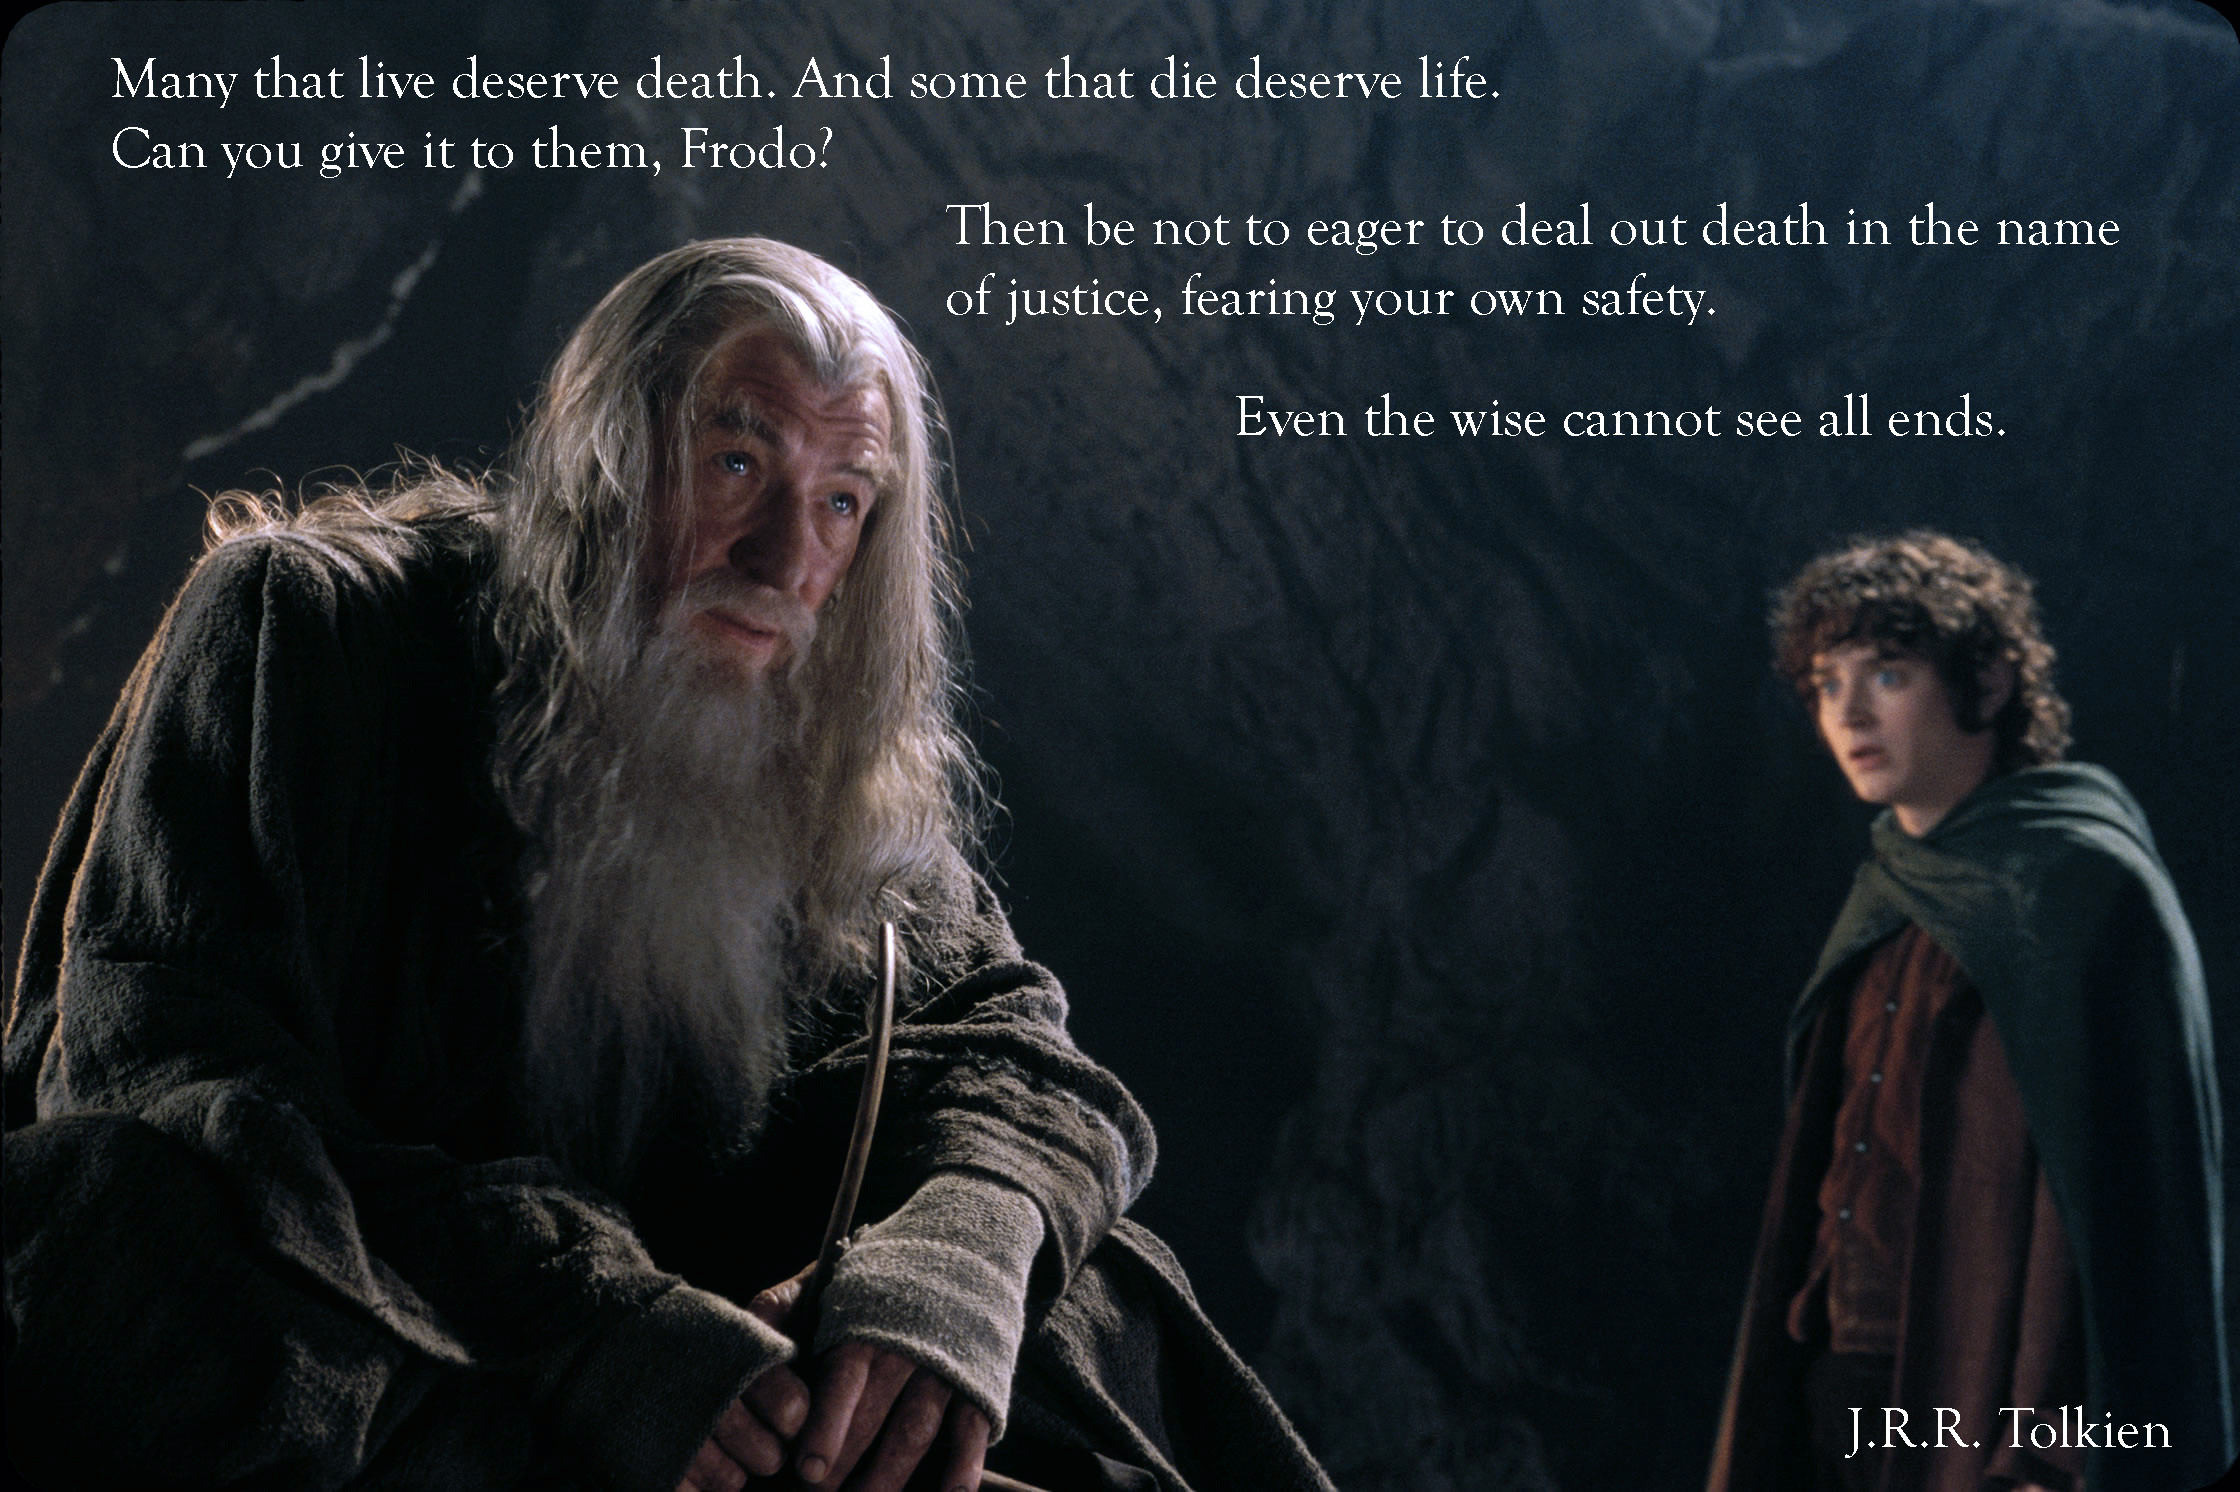 """Many that live deserve death. And some that die deserve life. Can you give it to them Frodo? Then be not eager to deal out death in the name of justice, fearing your own safety. Even the wise cannot see all ends."" Gandalf the Grey (J. R. R. Tolkien) [2240×1492]"